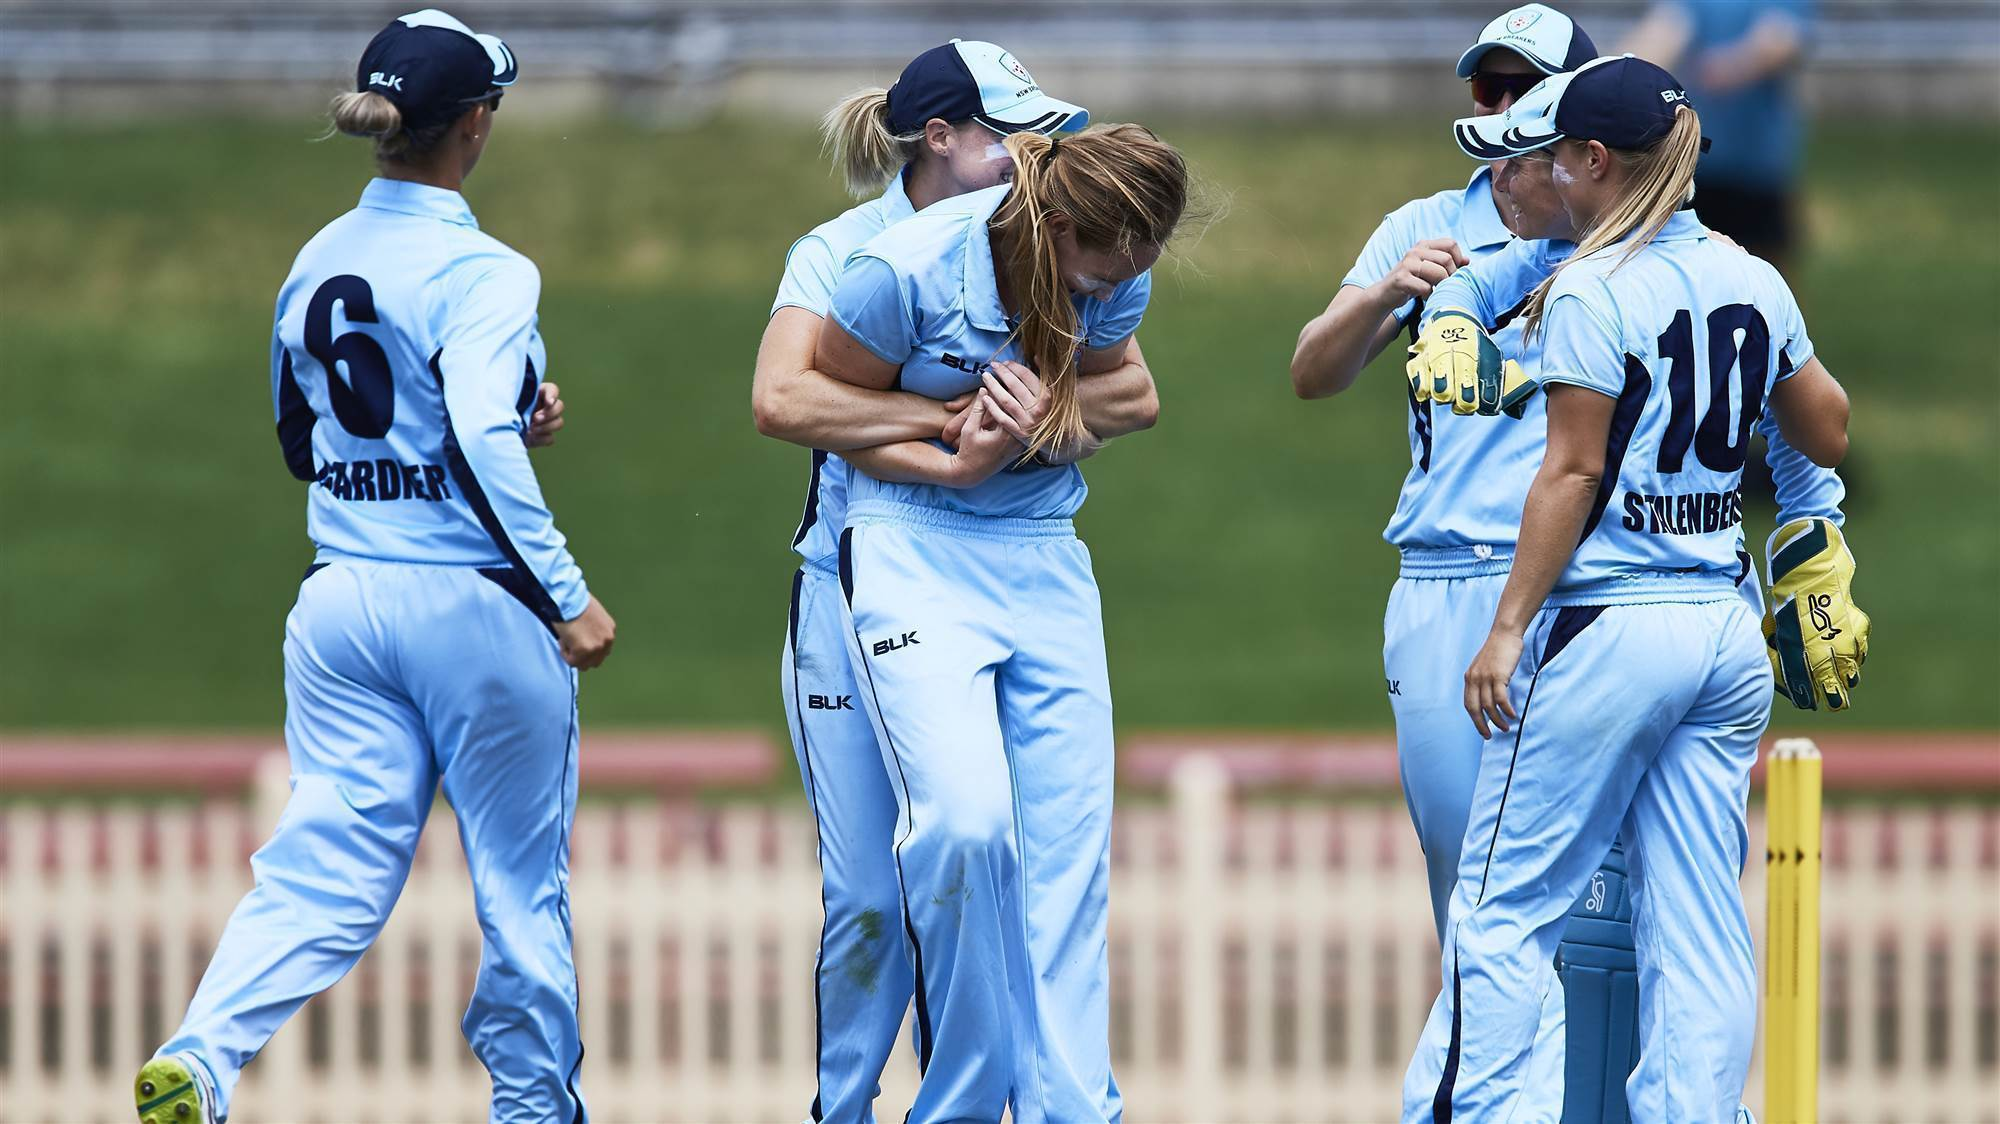 The road back to green and gold - Cricket - The Women's Game